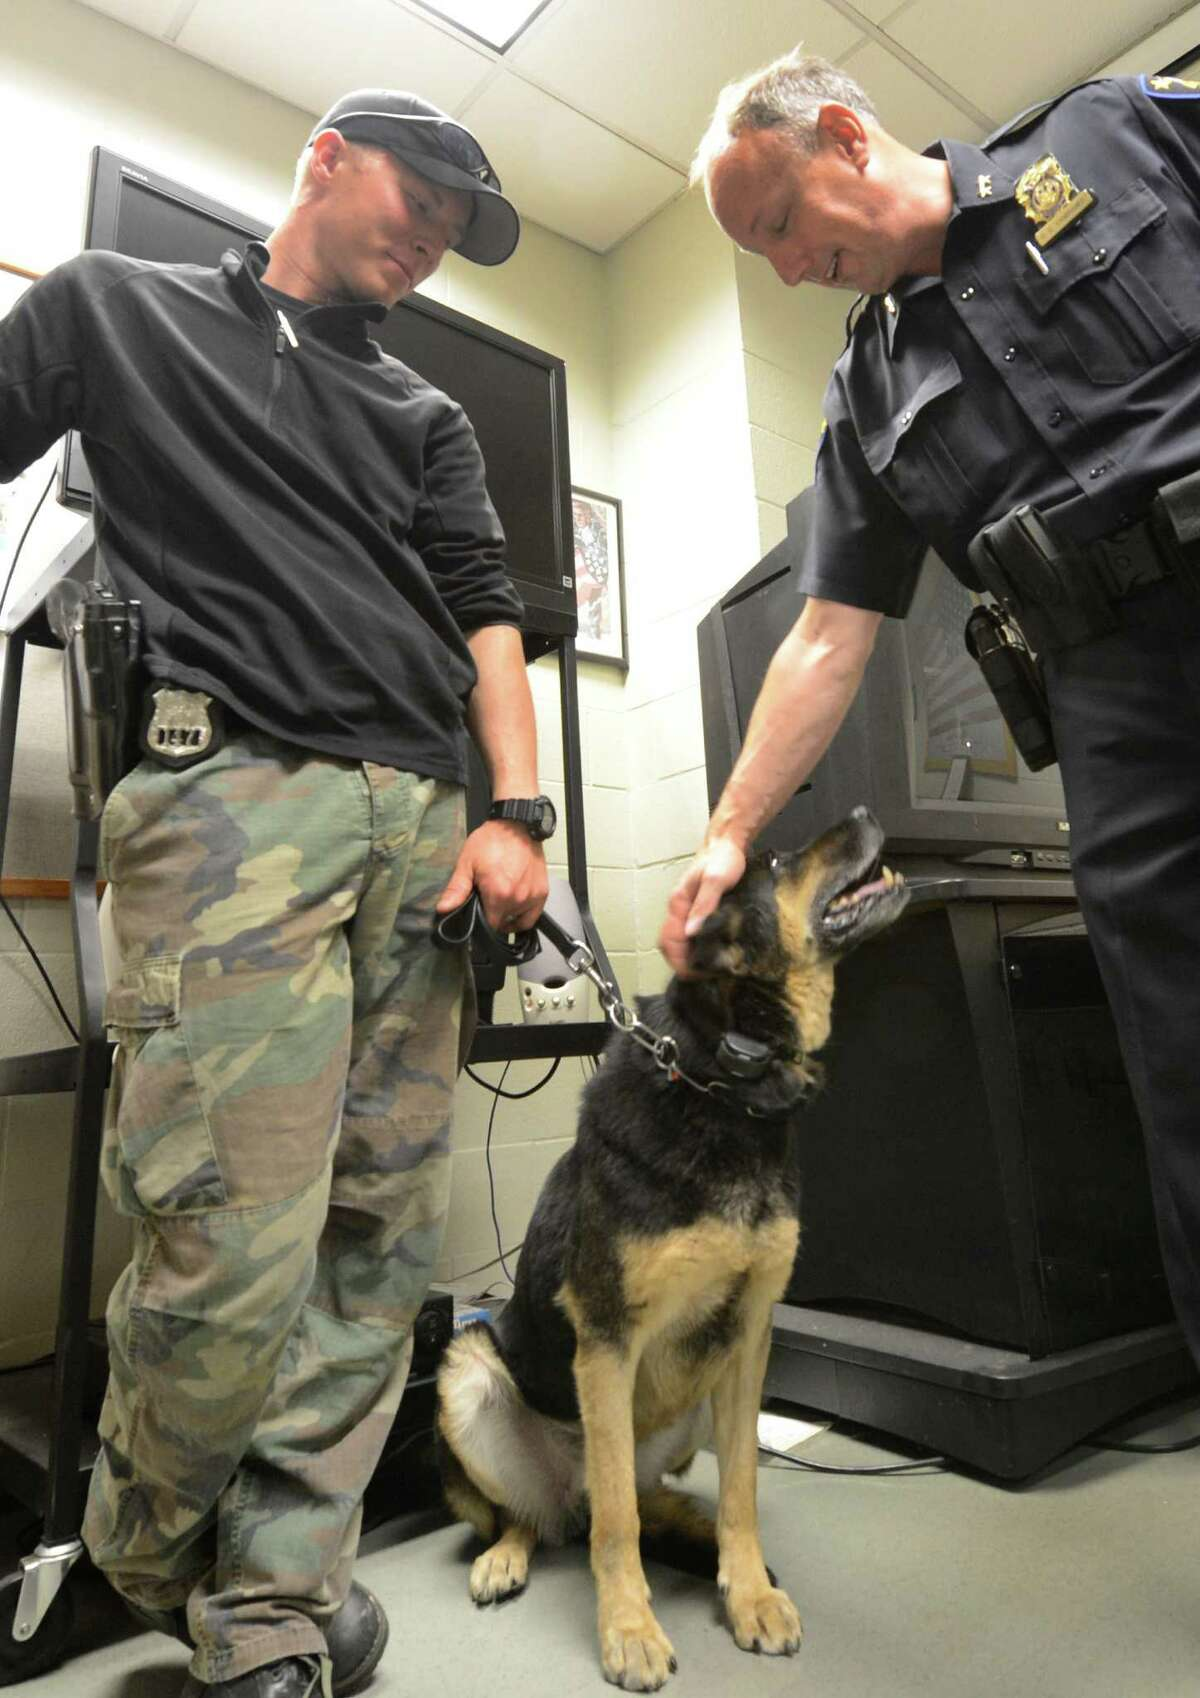 Troy Police Officer Justin Ashe, left is joined by Assistant Chief Geroge VanBramer as he gives K-9 officer Elza after drug raid which the K-9 alerted on a stash of cocaine which lead to the confiscation of approximately $115,000 in cash during a drug raid at 2534 5th Avenue in Troy, N.Y. Sept. 14, 2012. Arrested was Jamaine Myers at the 5th Avenue address. (Skip Dickstein/Times Union)